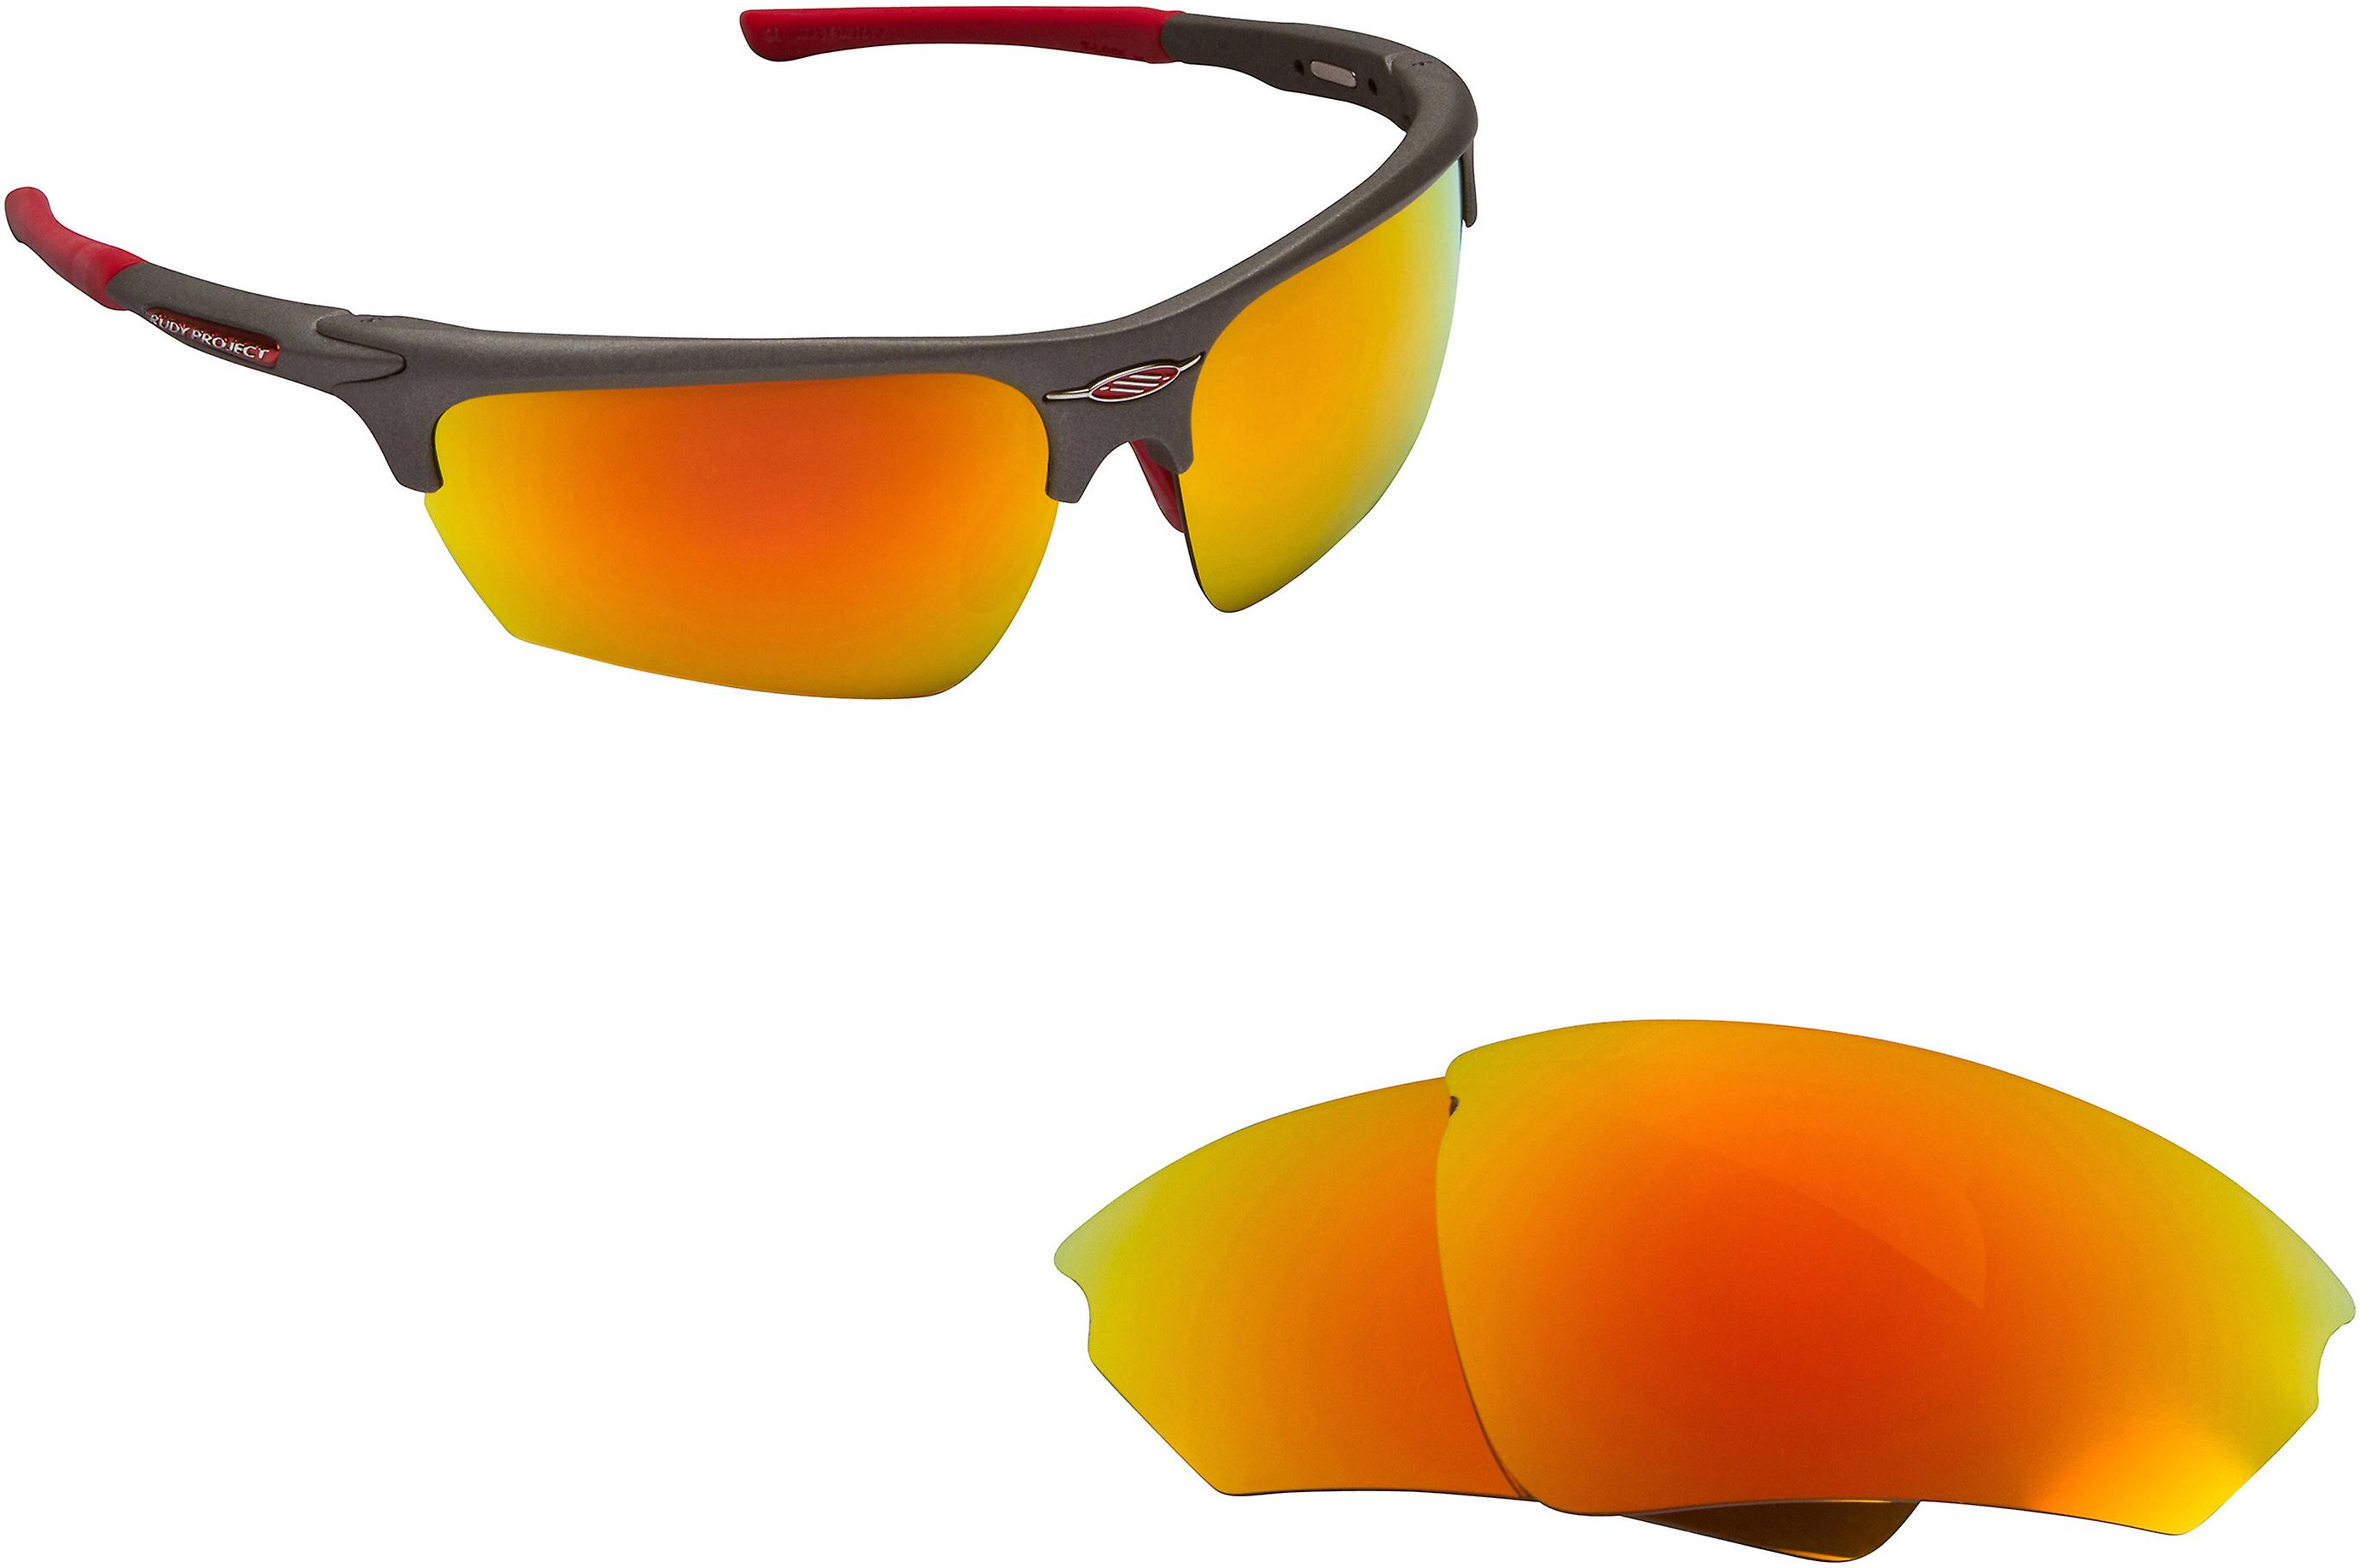 8b01798ae2 Noyz Replacement Lenses Polarized Red Mirror by SEEK fits RUDY PROJECT